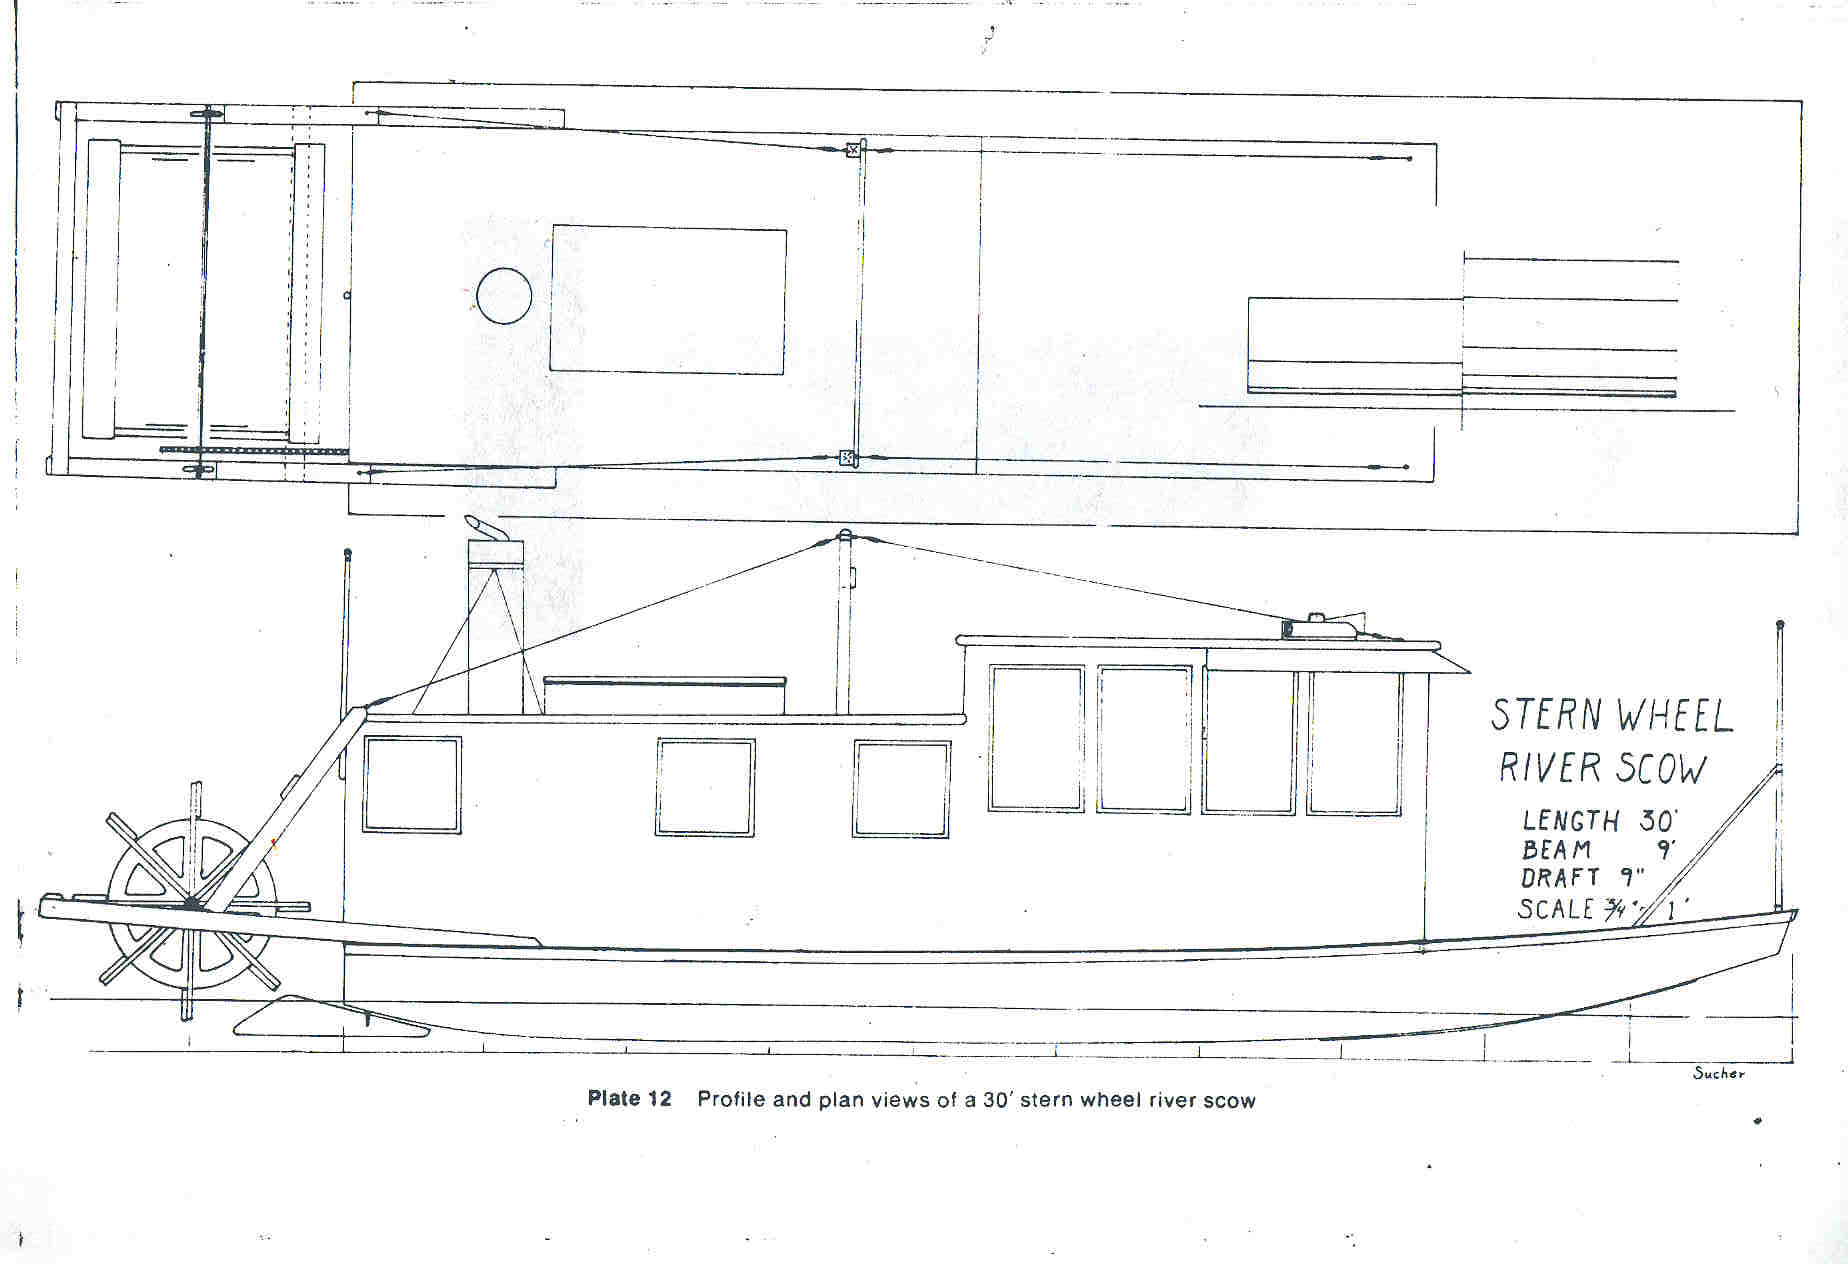 House Boat Designs How To Building Amazing Diy Boat